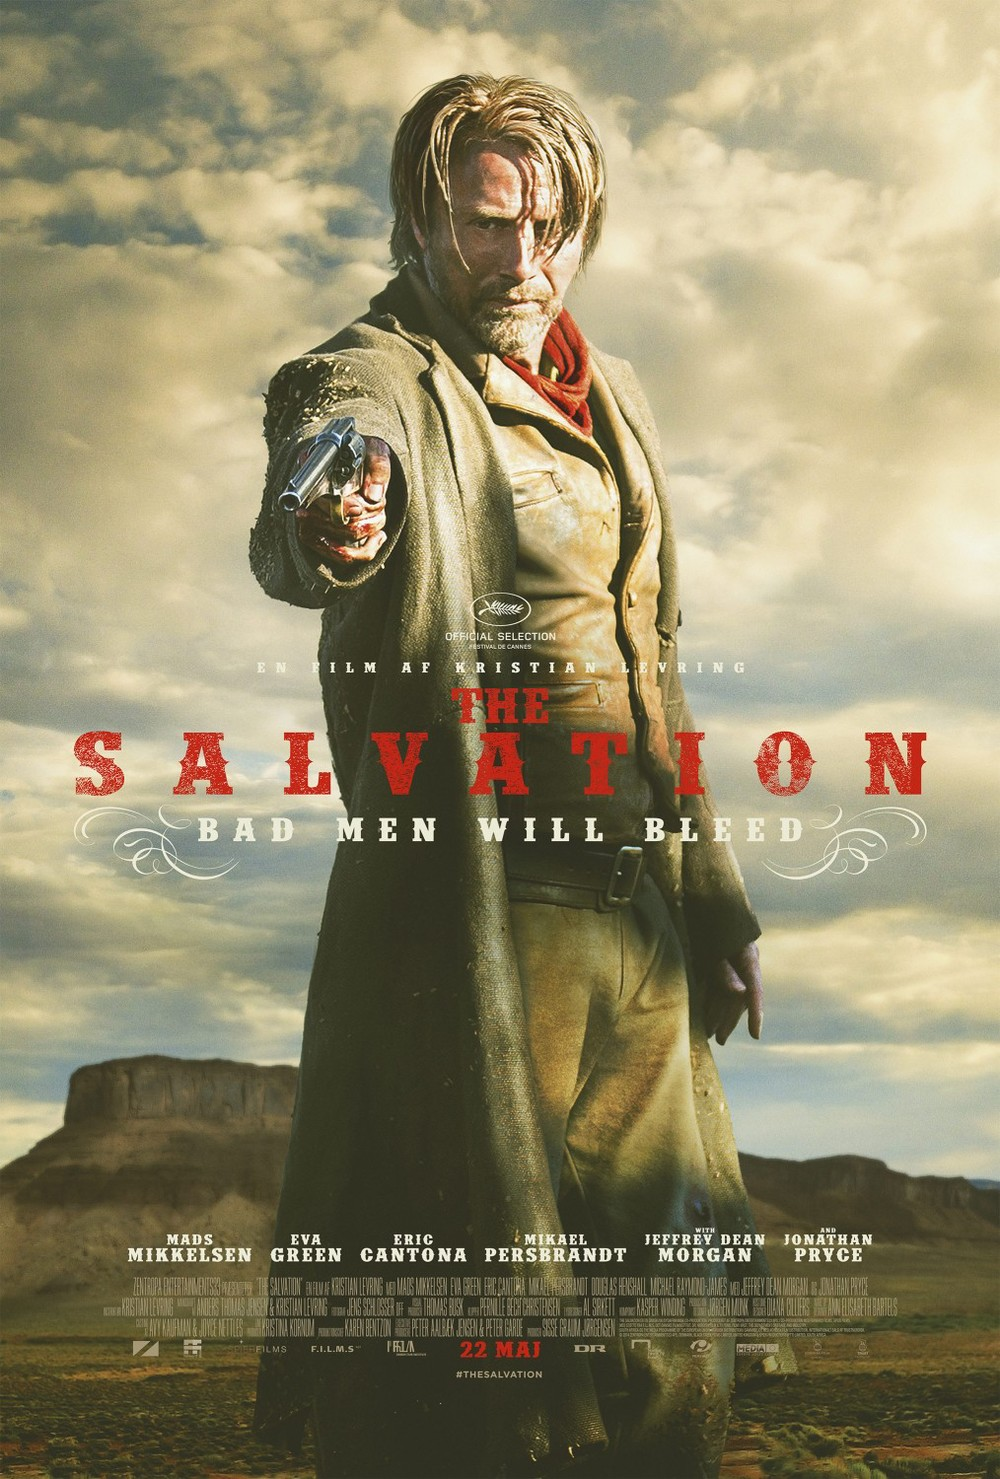 The Salvation poster. From Moviezine.se.